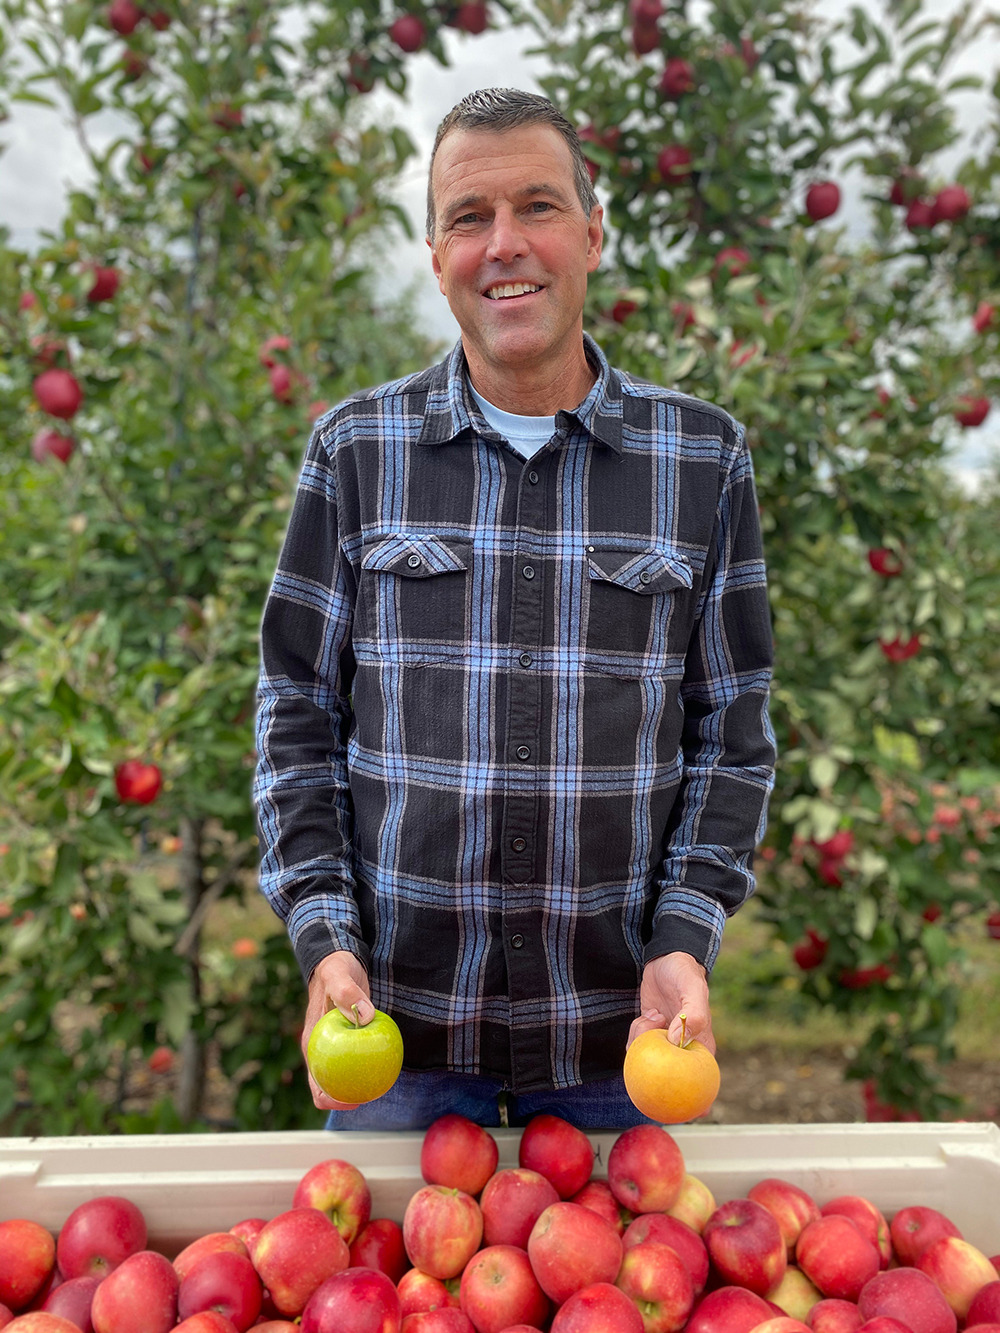 A man standing in an orchard holding apples